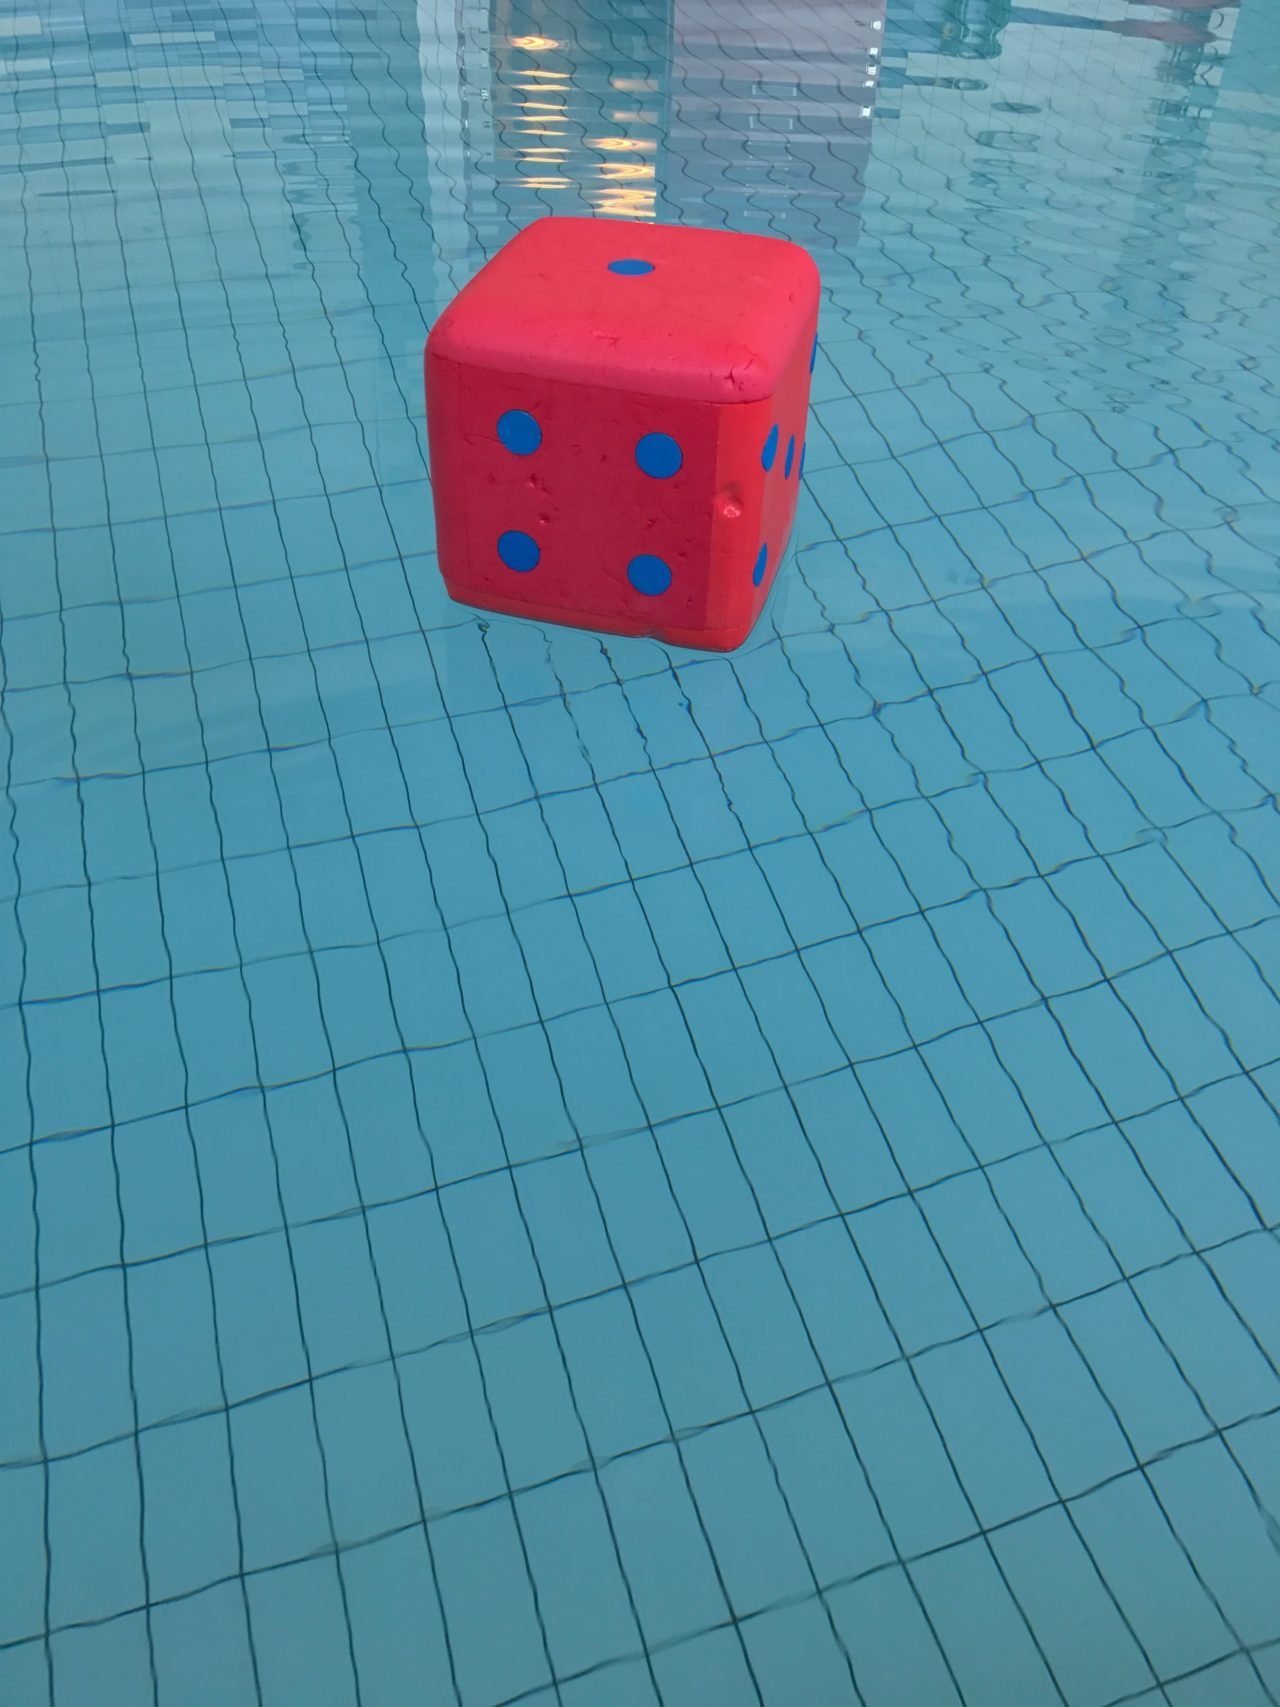 Floating Dice With Blue Dots In The Exercise Pool